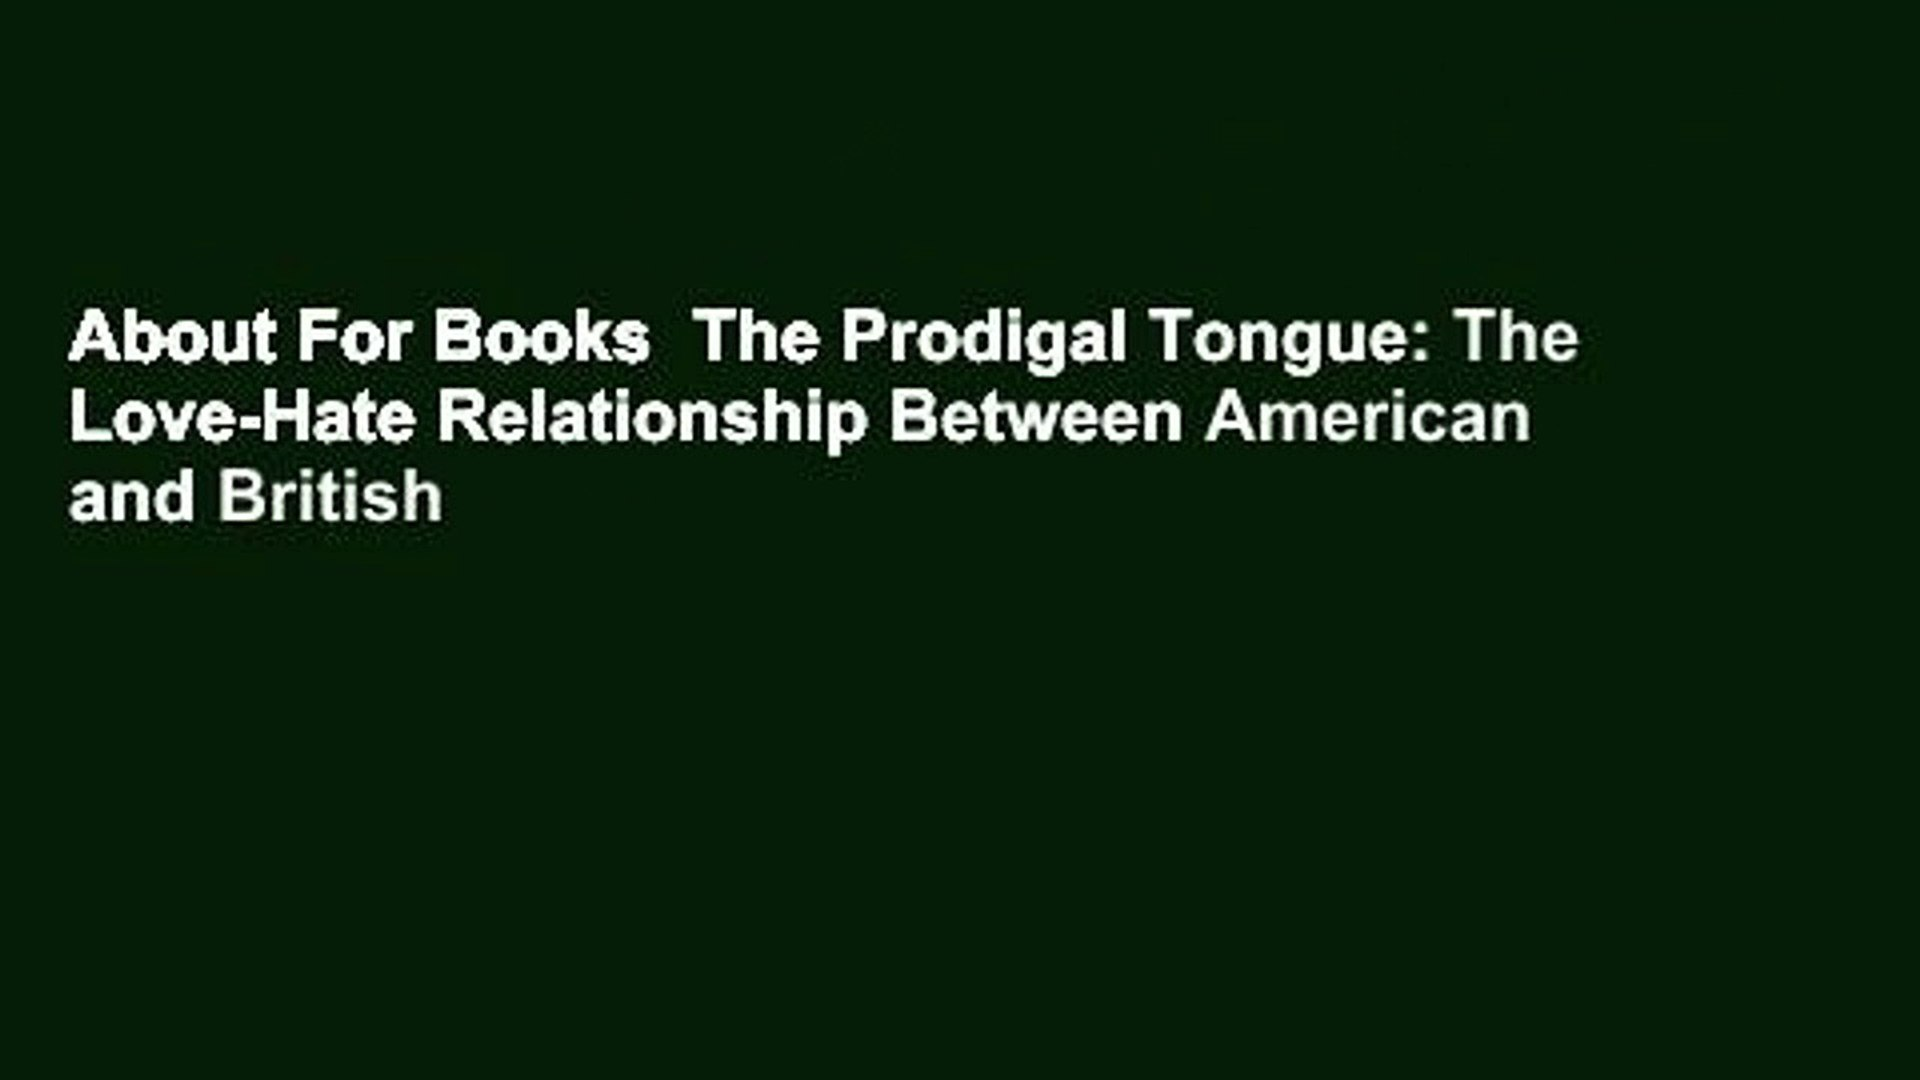 About For Books  The Prodigal Tongue: The Love-Hate Relationship Between American and British